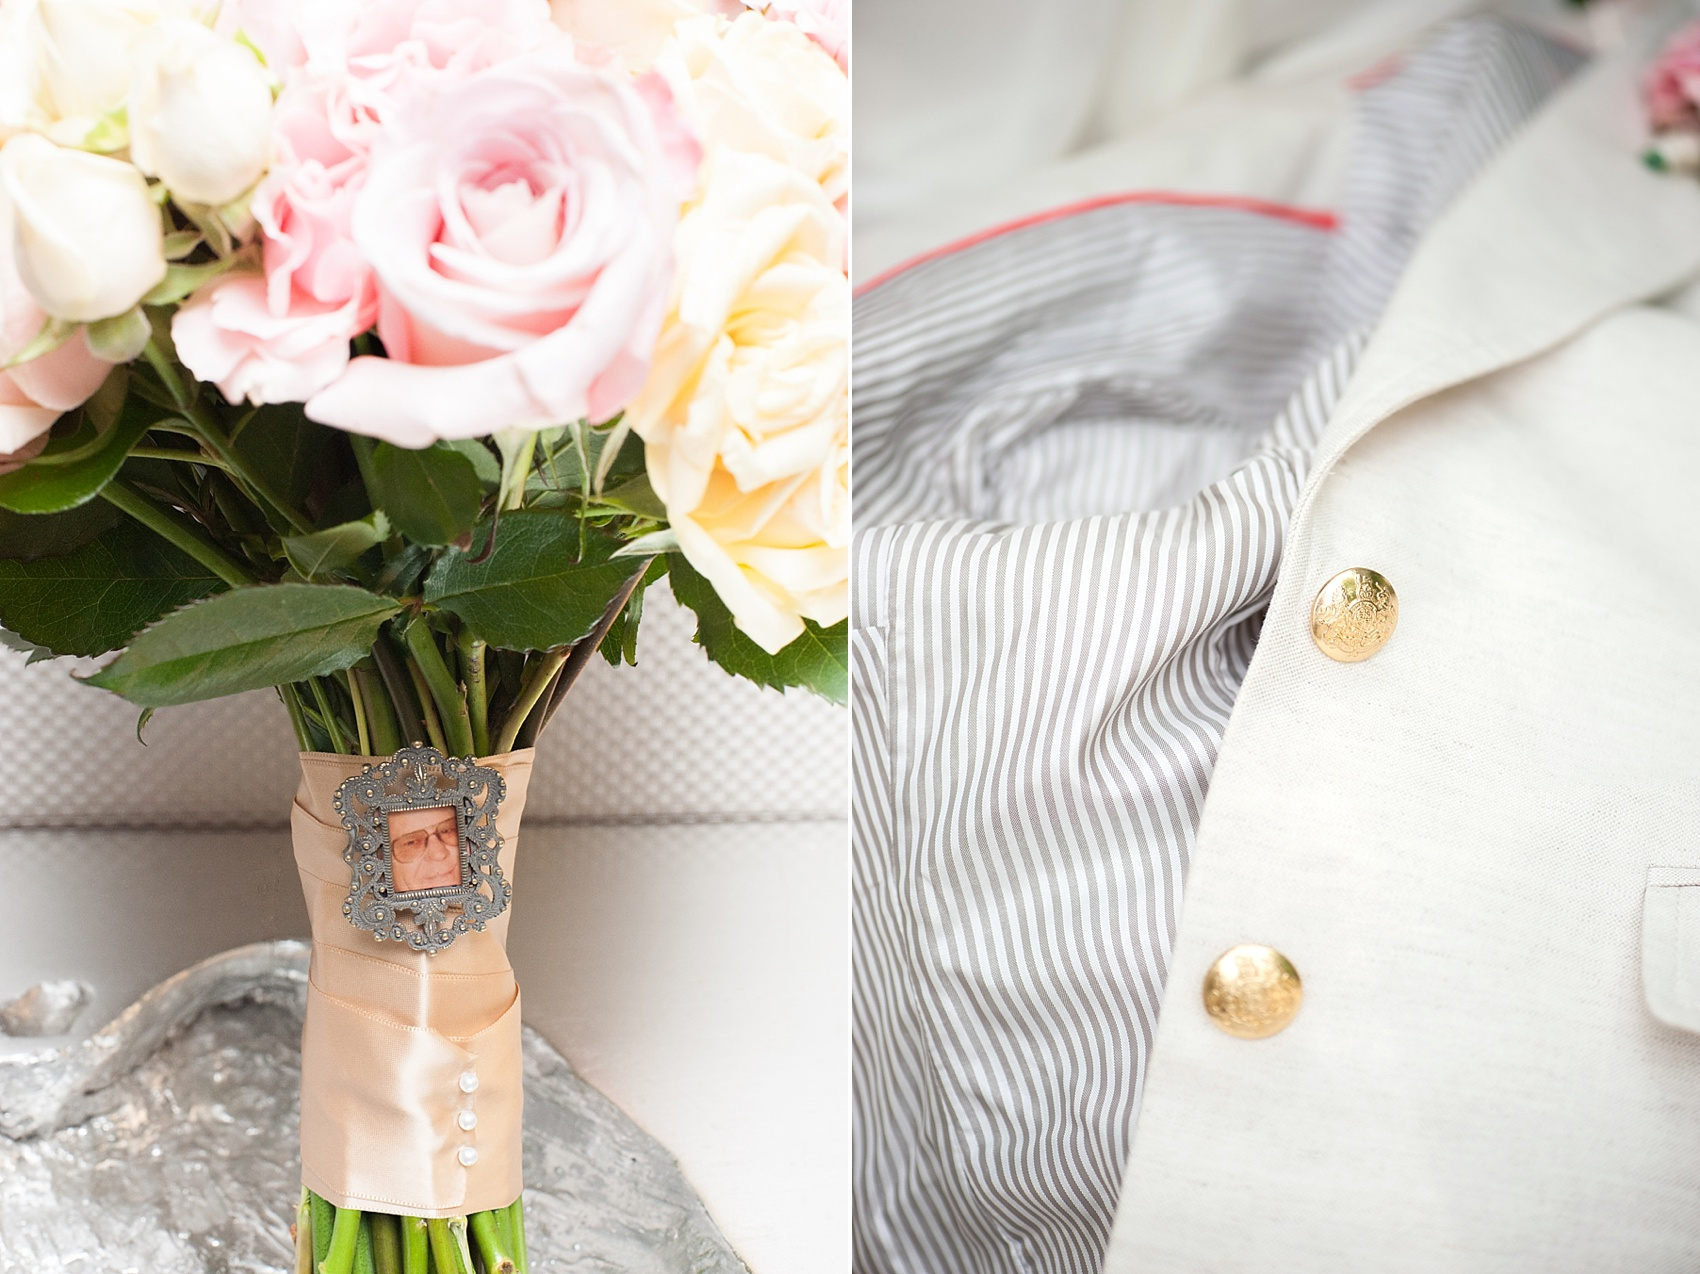 Pink rose bouquet with a photo keepsake of the bride's grandfather attached to the stems for a Central Park same sex wedding elopement. Photos by Mikkel Paige Photography. #boutonniere #roses #equality #centralparkwedding